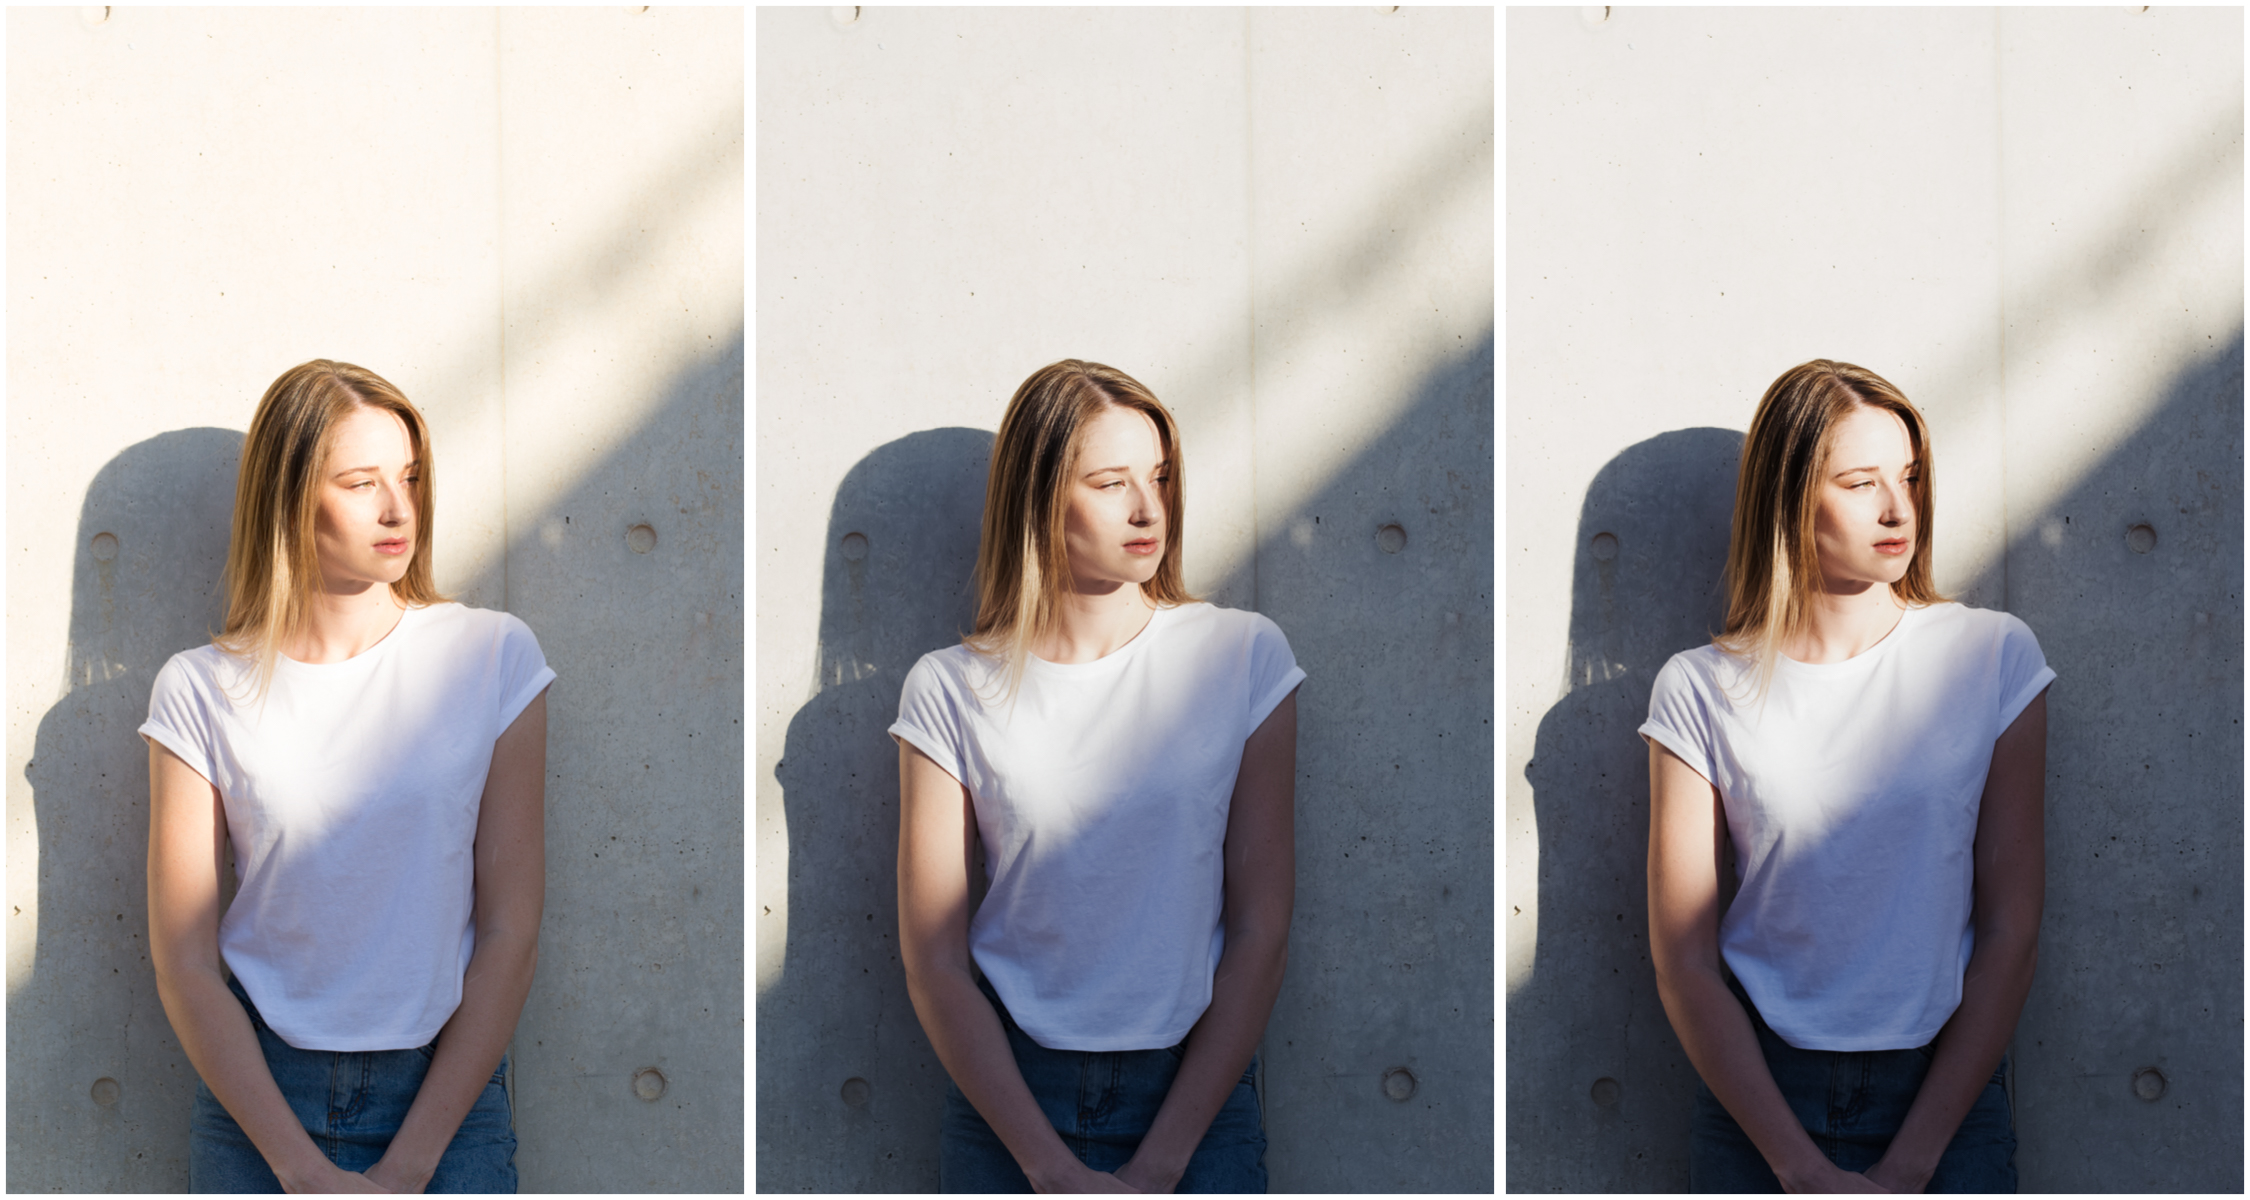 RAW (left), A6- (middle), A6 (right)